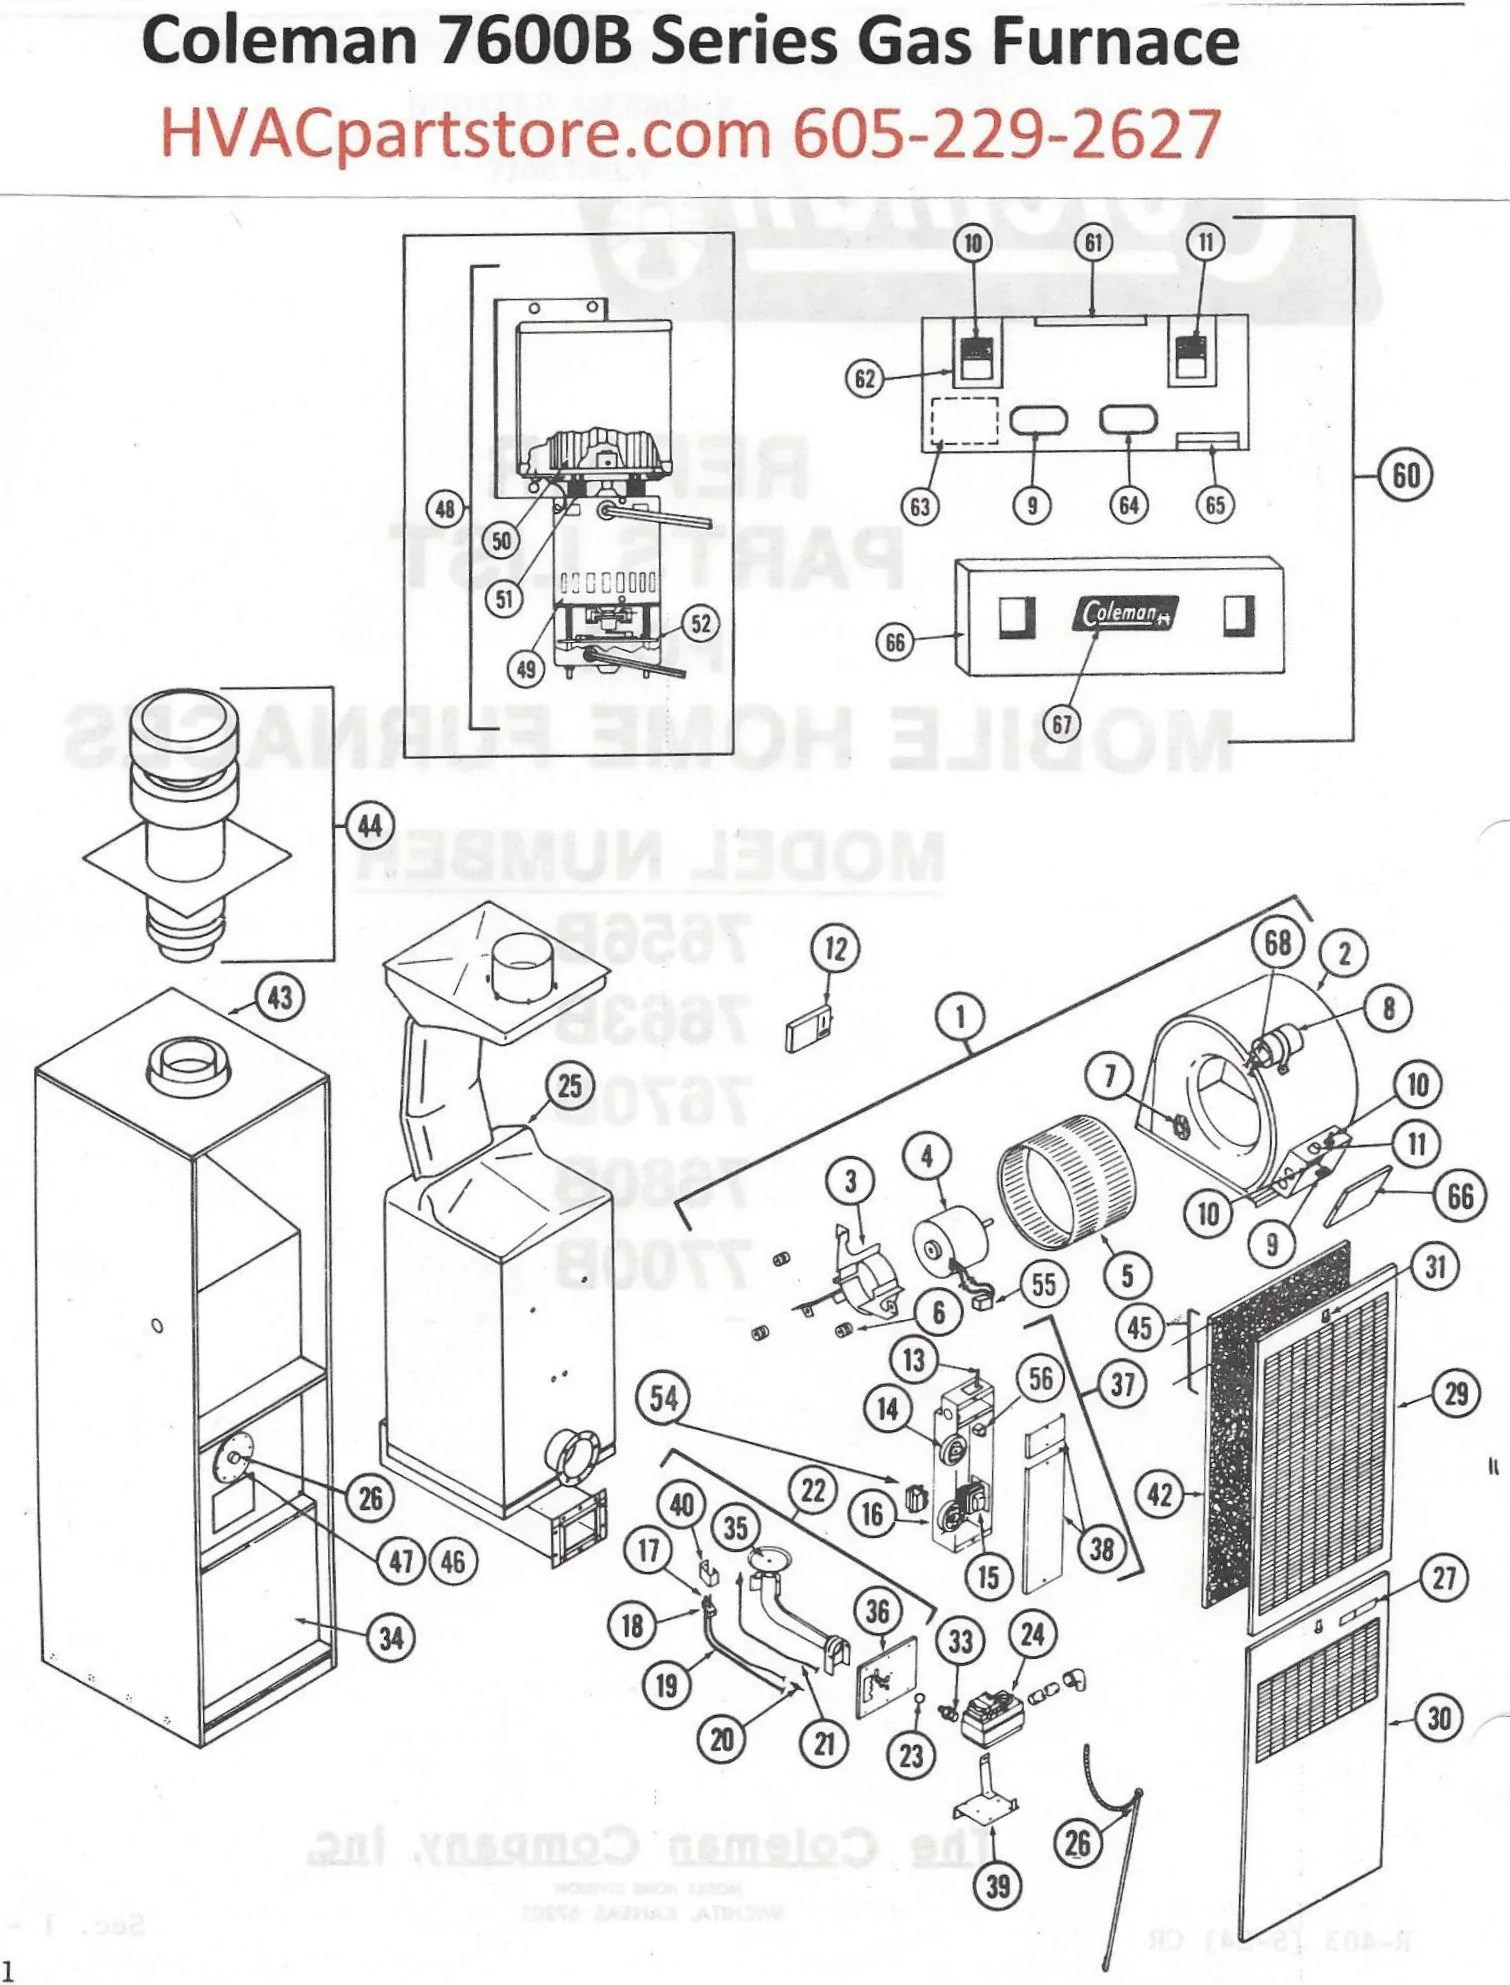 hight resolution of coleman gas furnace wiring diagram simple wiring schema7680b856 coleman gas furnace parts hvacpartstore coleman gas furnace